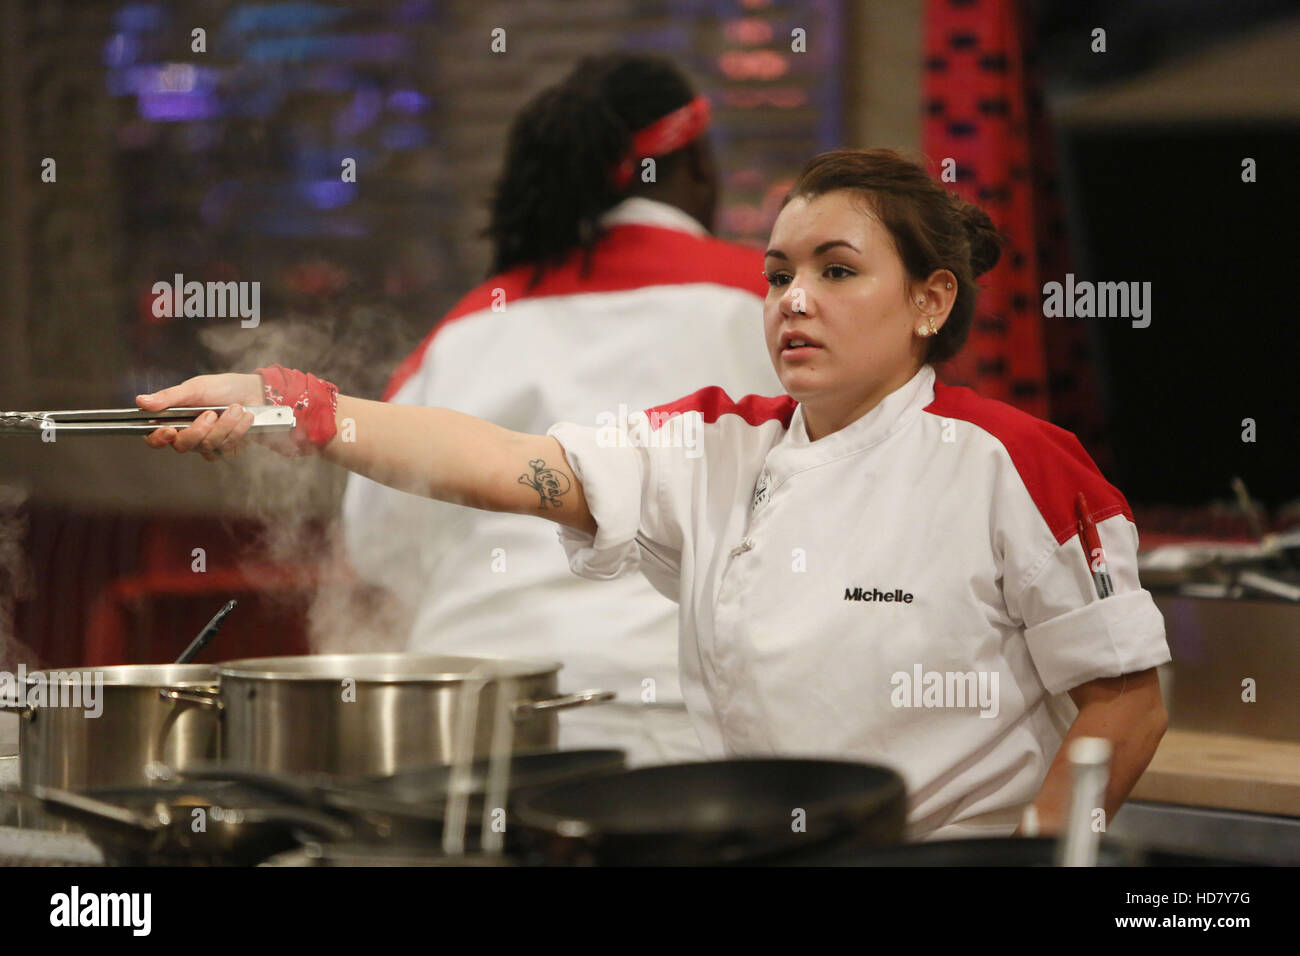 Pleasing Hells Kitchen Michelle In 17 Chefs Compete Season 14 Home Interior And Landscaping Ologienasavecom